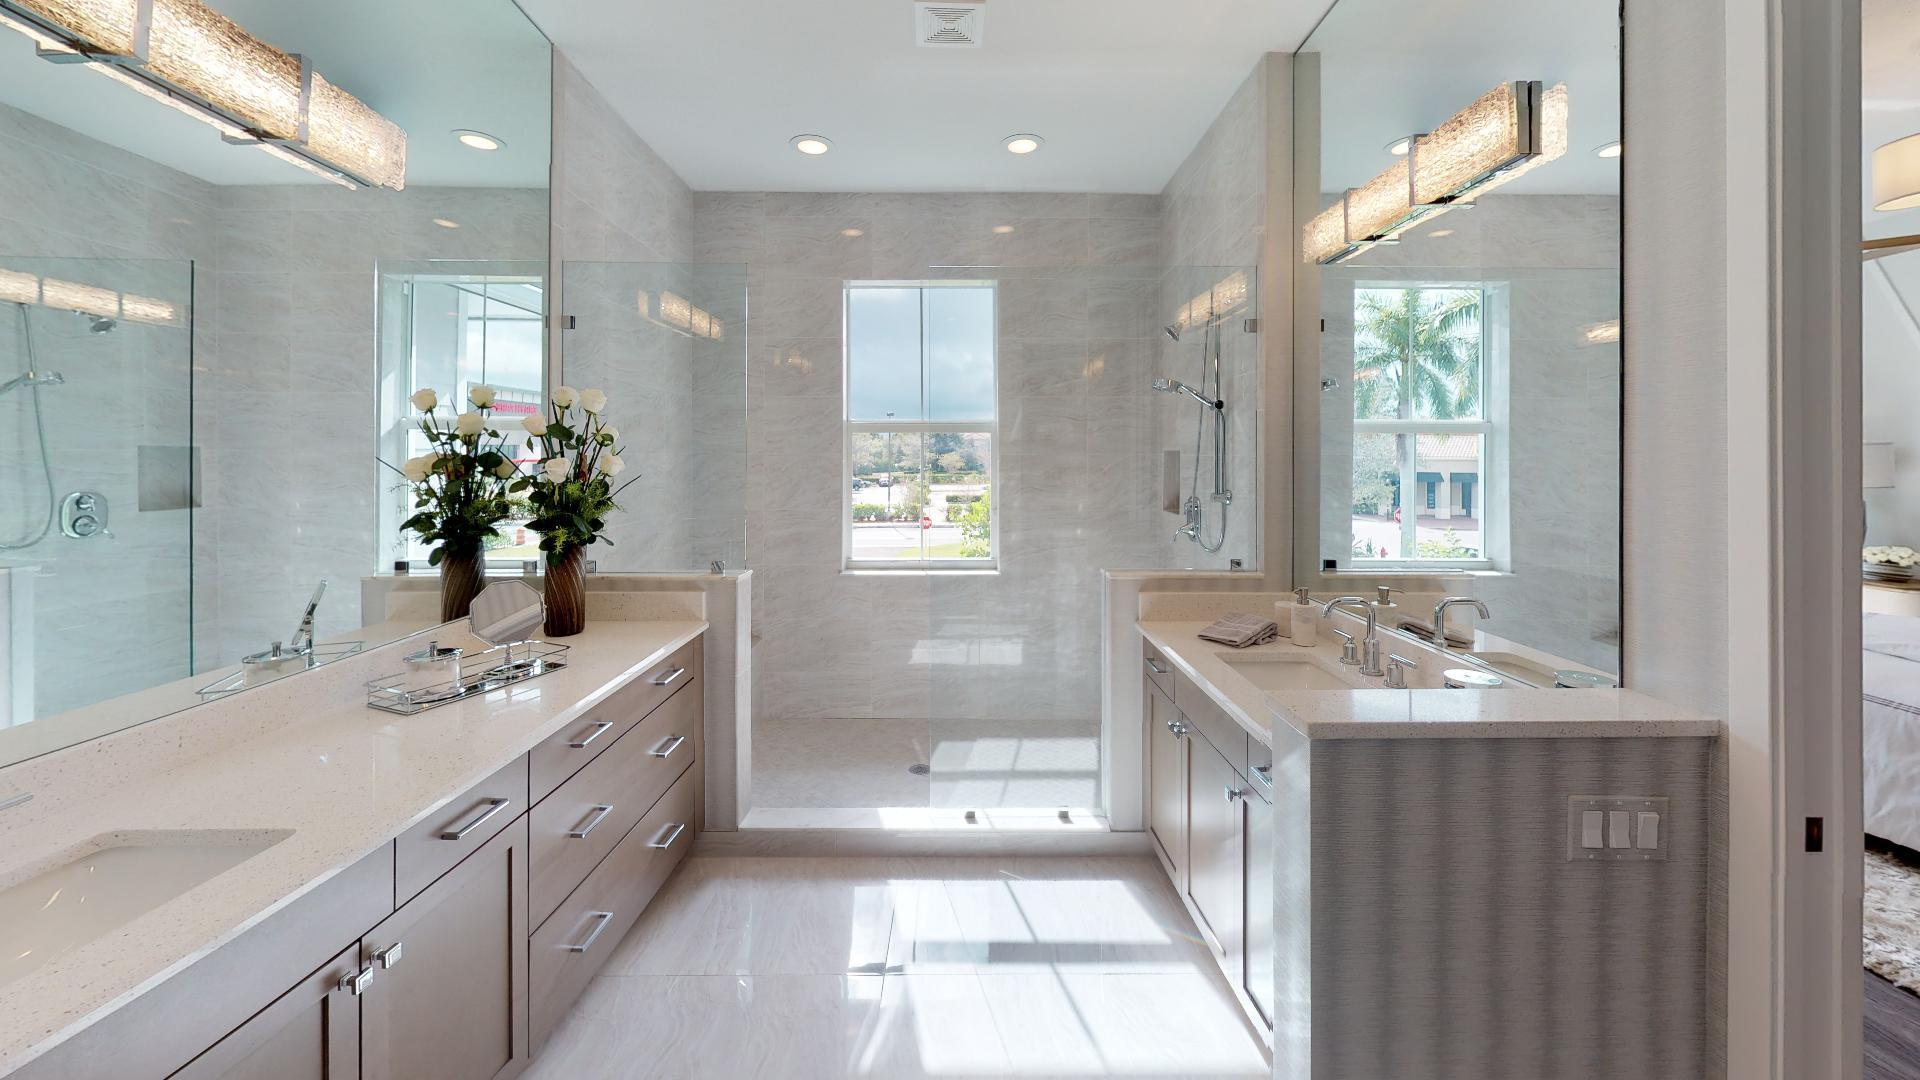 Bathroom featured in the ECHO By Ascend Properties  in Palm Beach County, FL